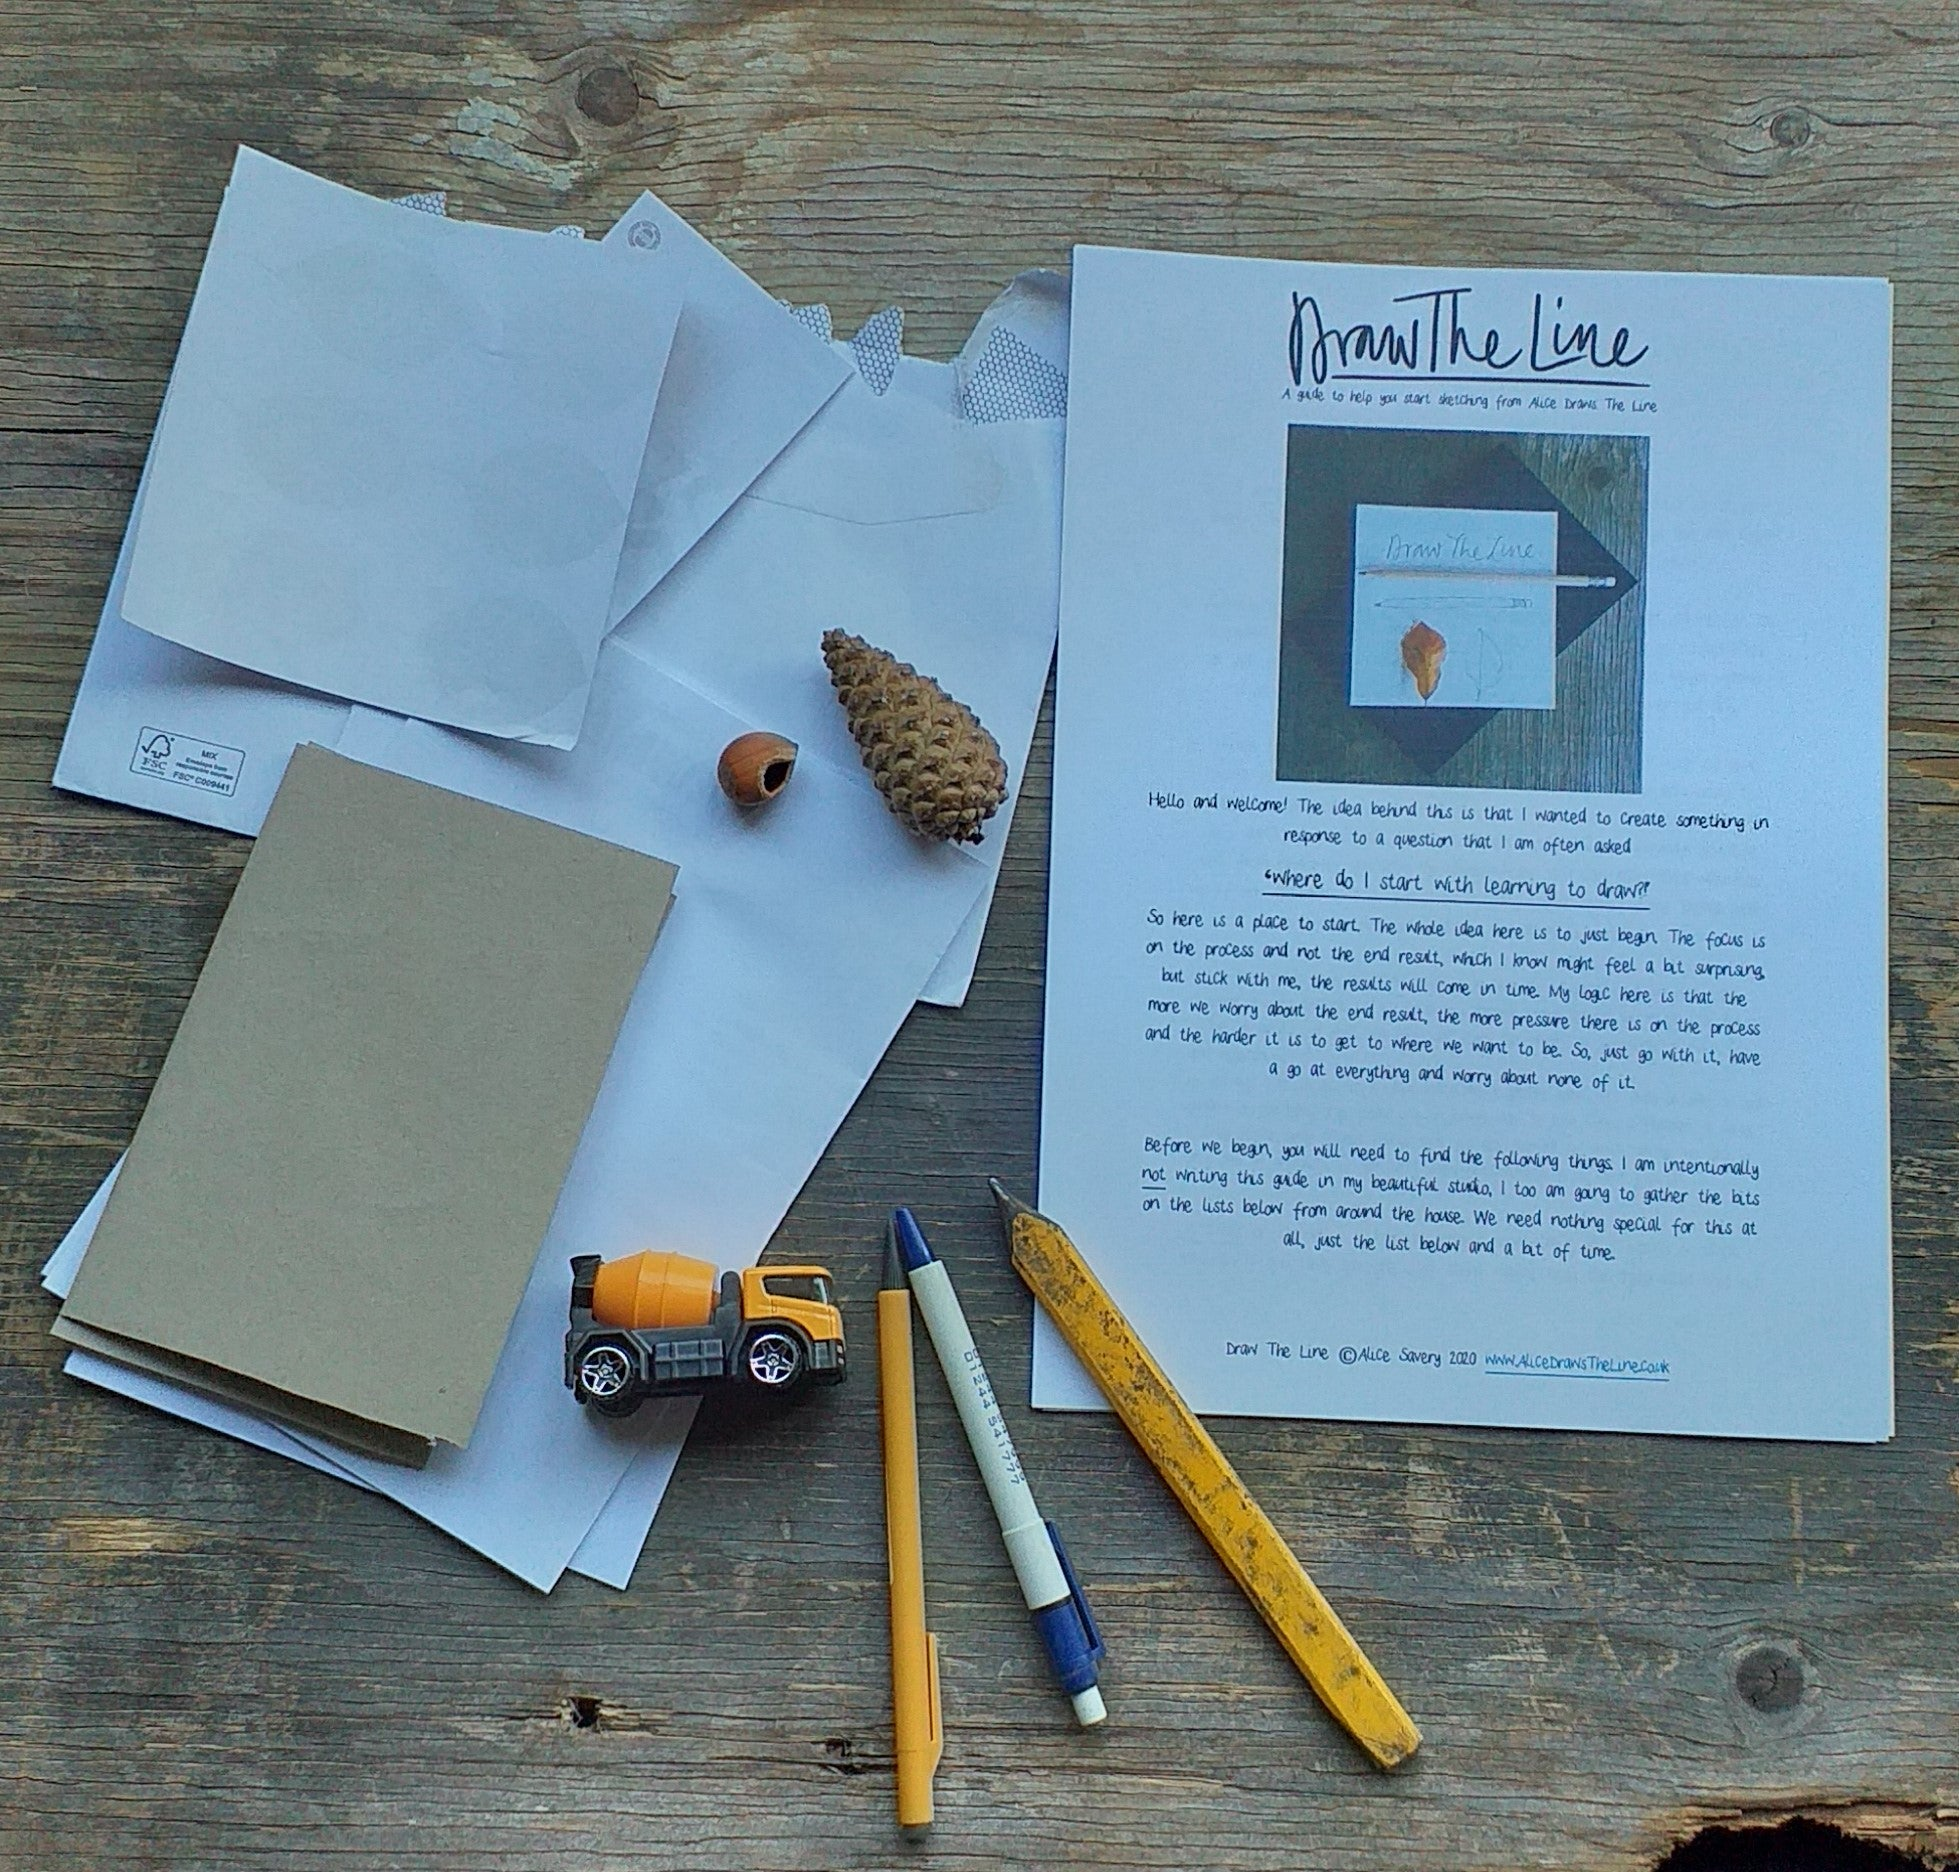 Draw the Line, a beginner's guide to drawing by Alice Draws the Line